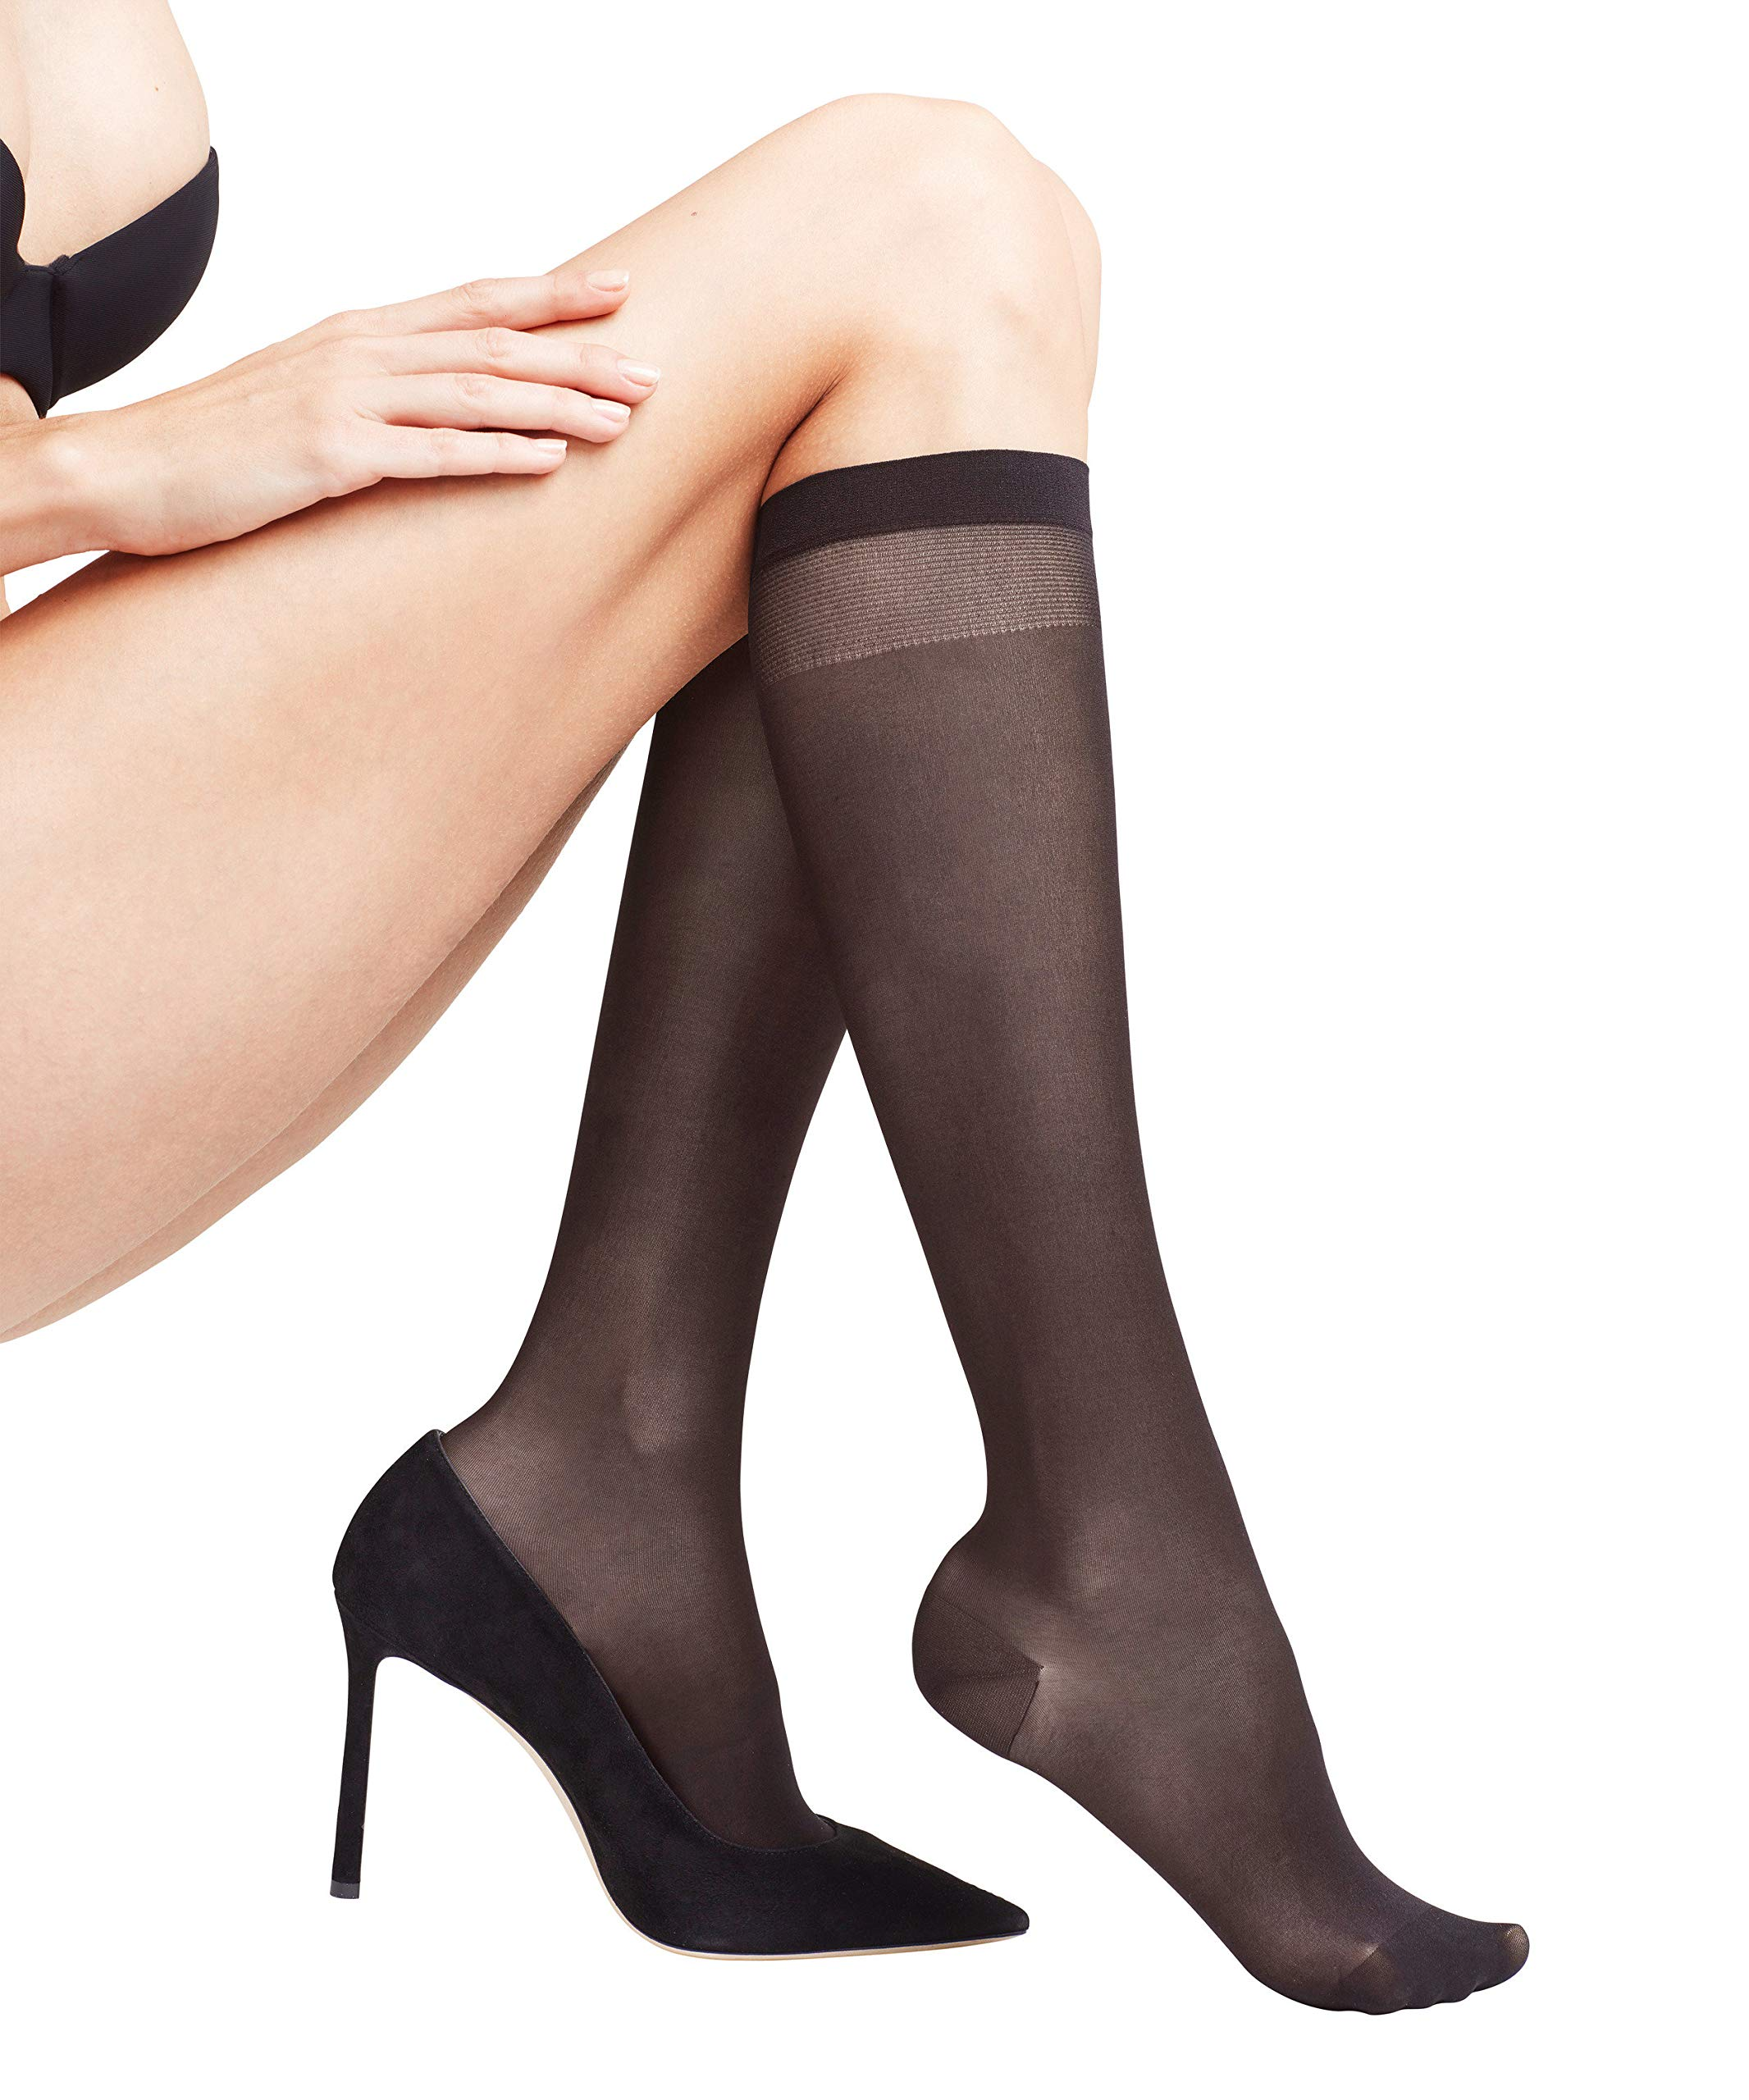 FALKE Womens Leg Vitalizer 20 DEN Compression Knee-High Dress Sock - Sheer, Matt, Black, US sizes 5 to 10.5, 1 Pair